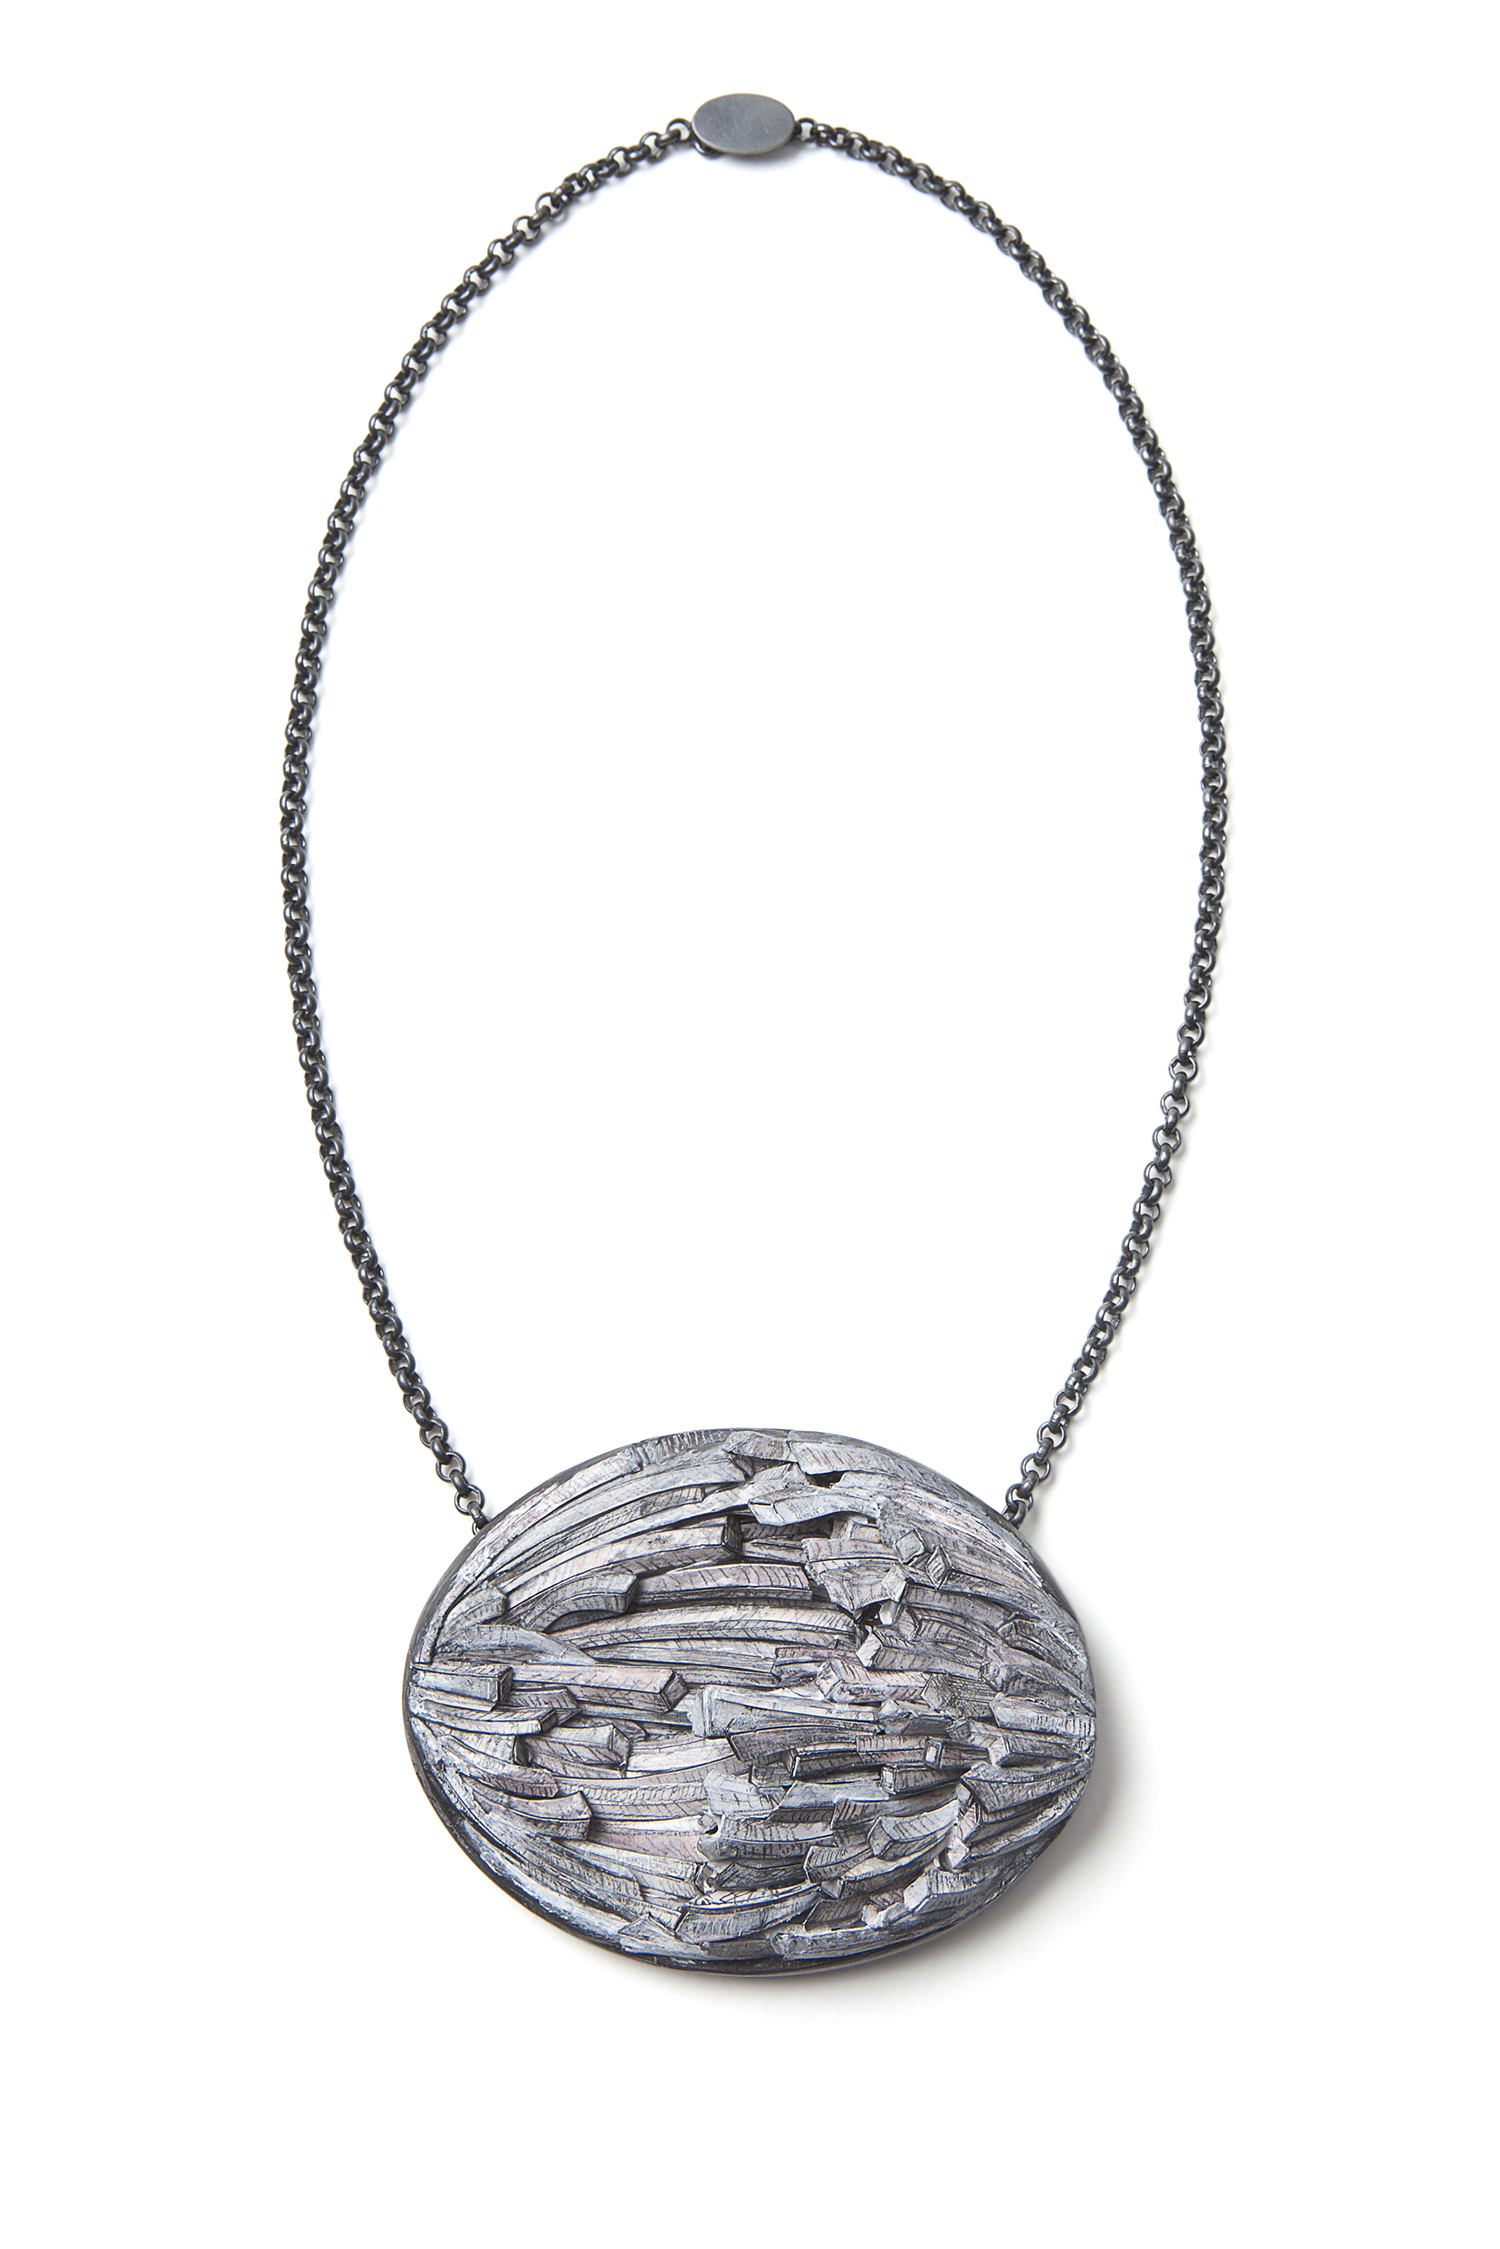 Untitled | Necklace | 2016 | Paper, paint, silver, wood, graphite | 200X140X45mm